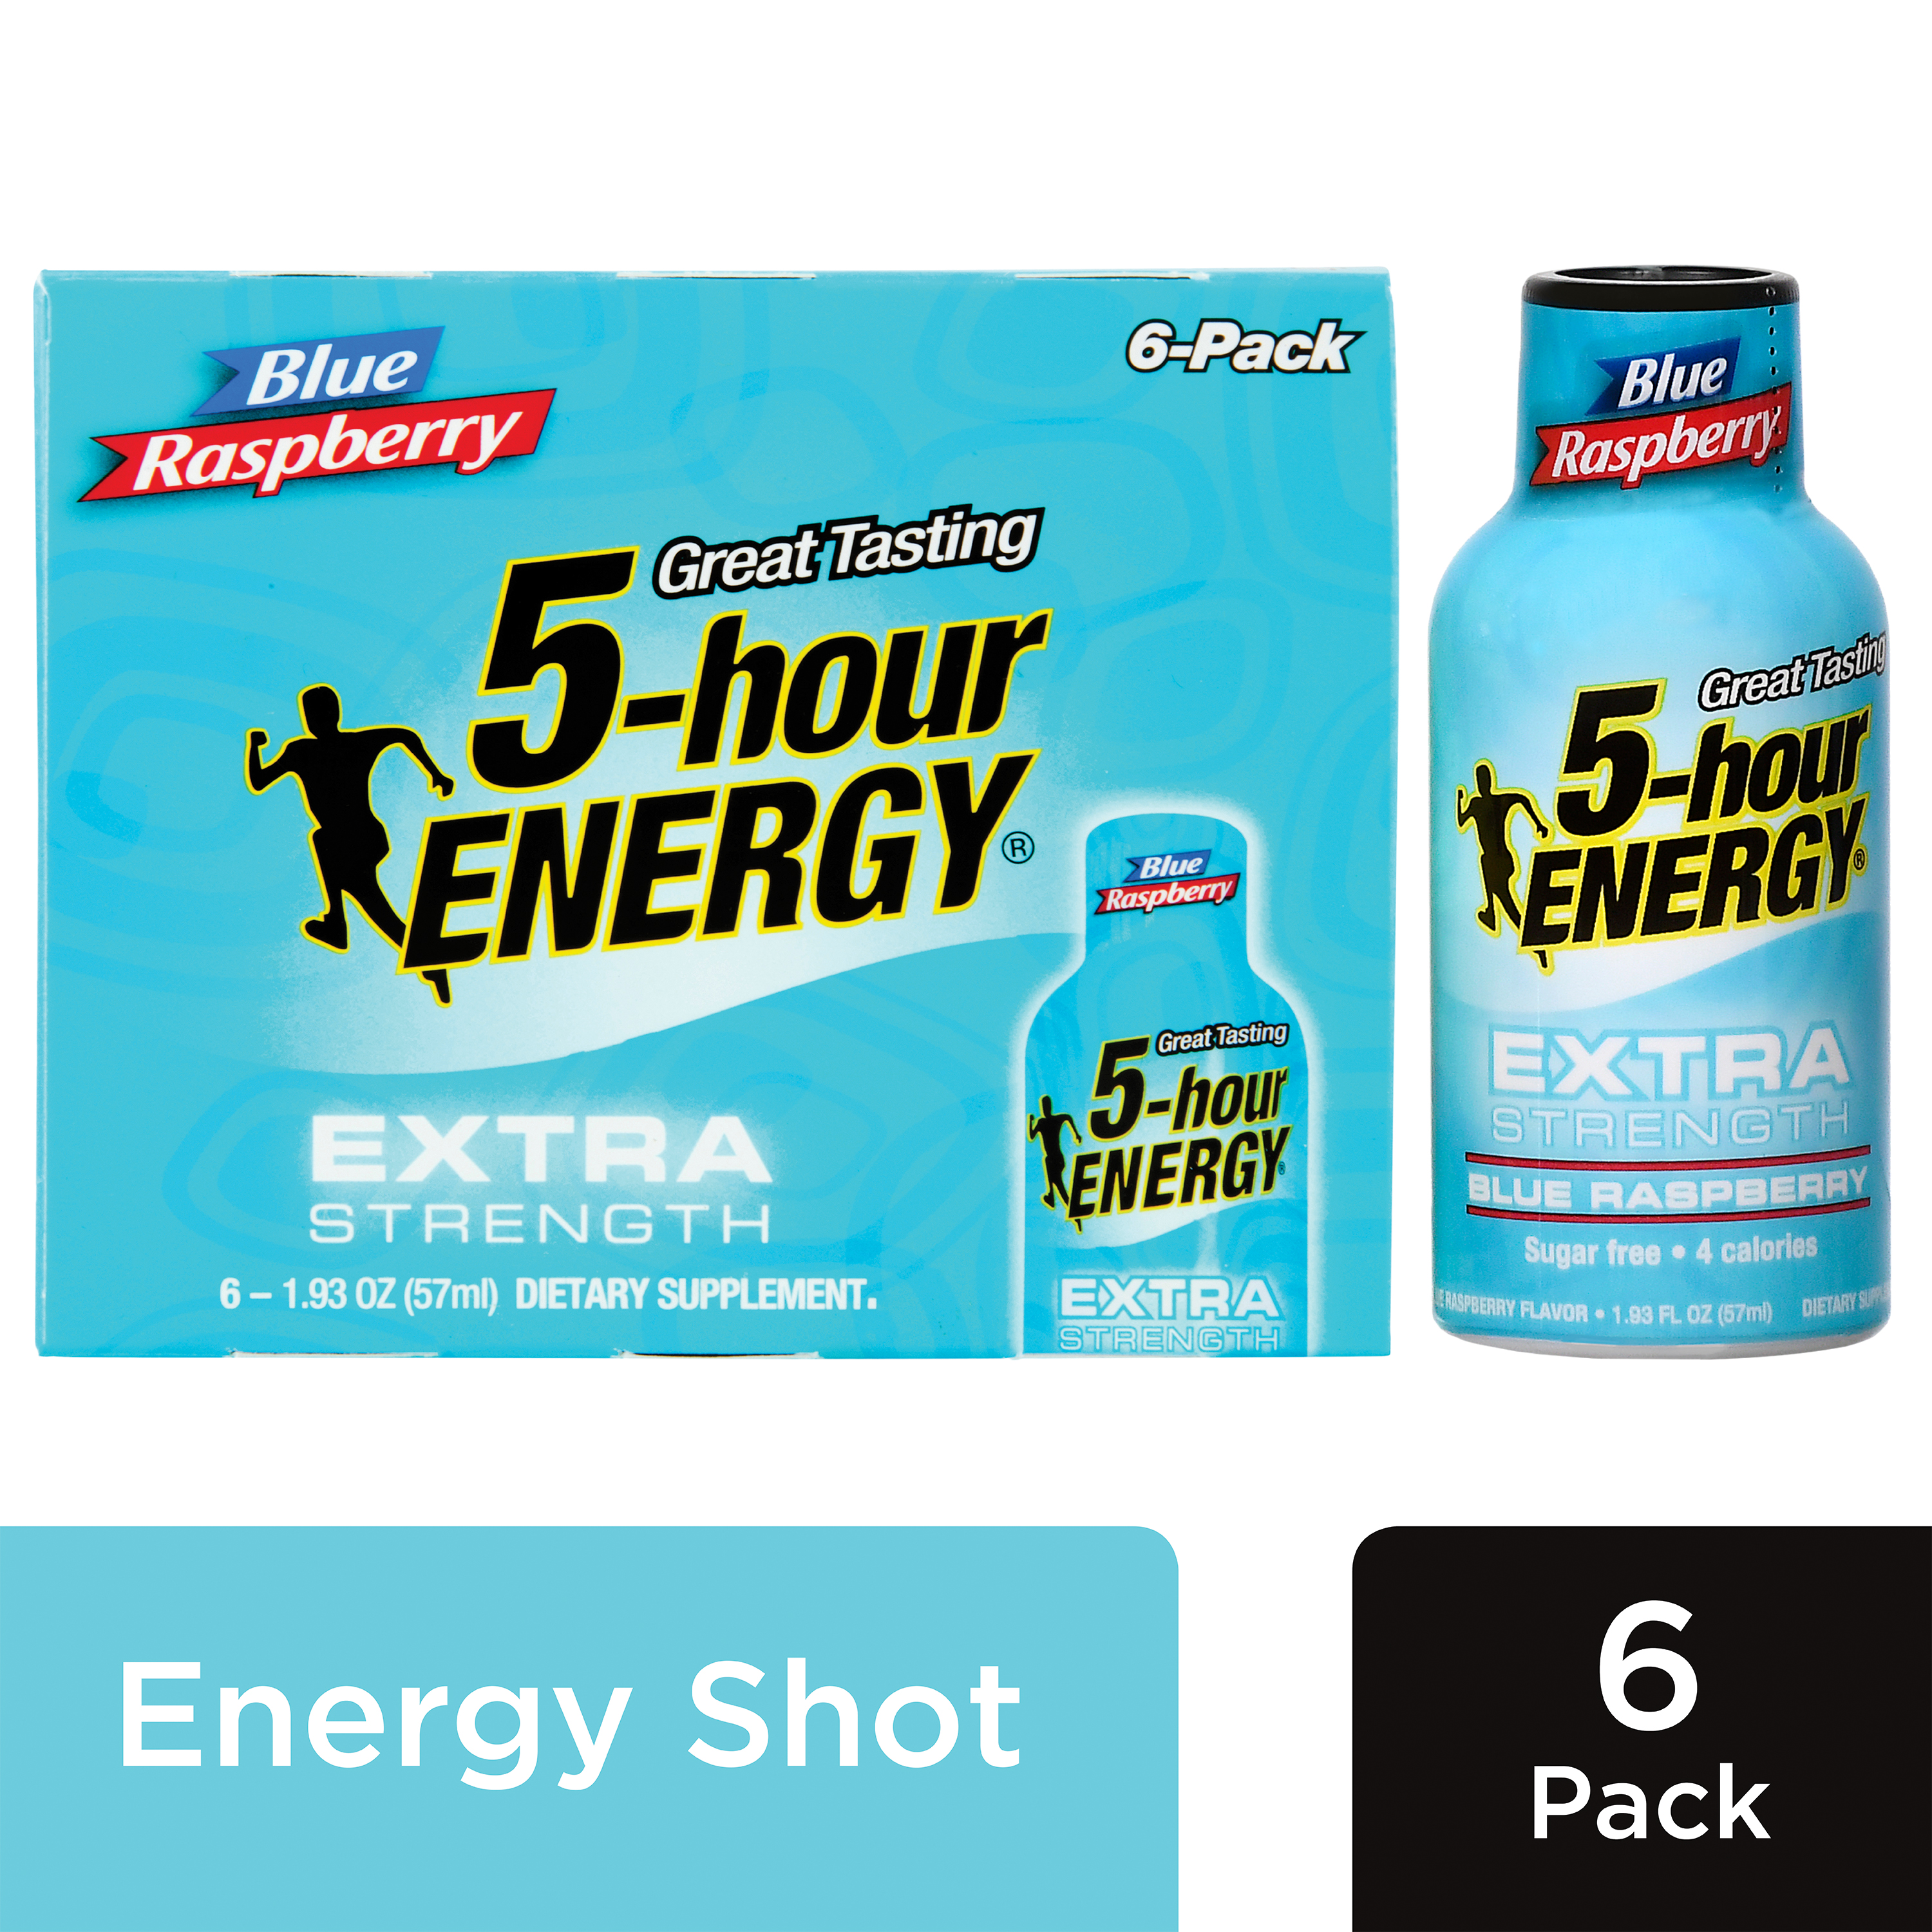 5-hour ENERGY® Extra Strength Blue Raspberry Flavor, Low Calorie Energy Shot, 6 Pack